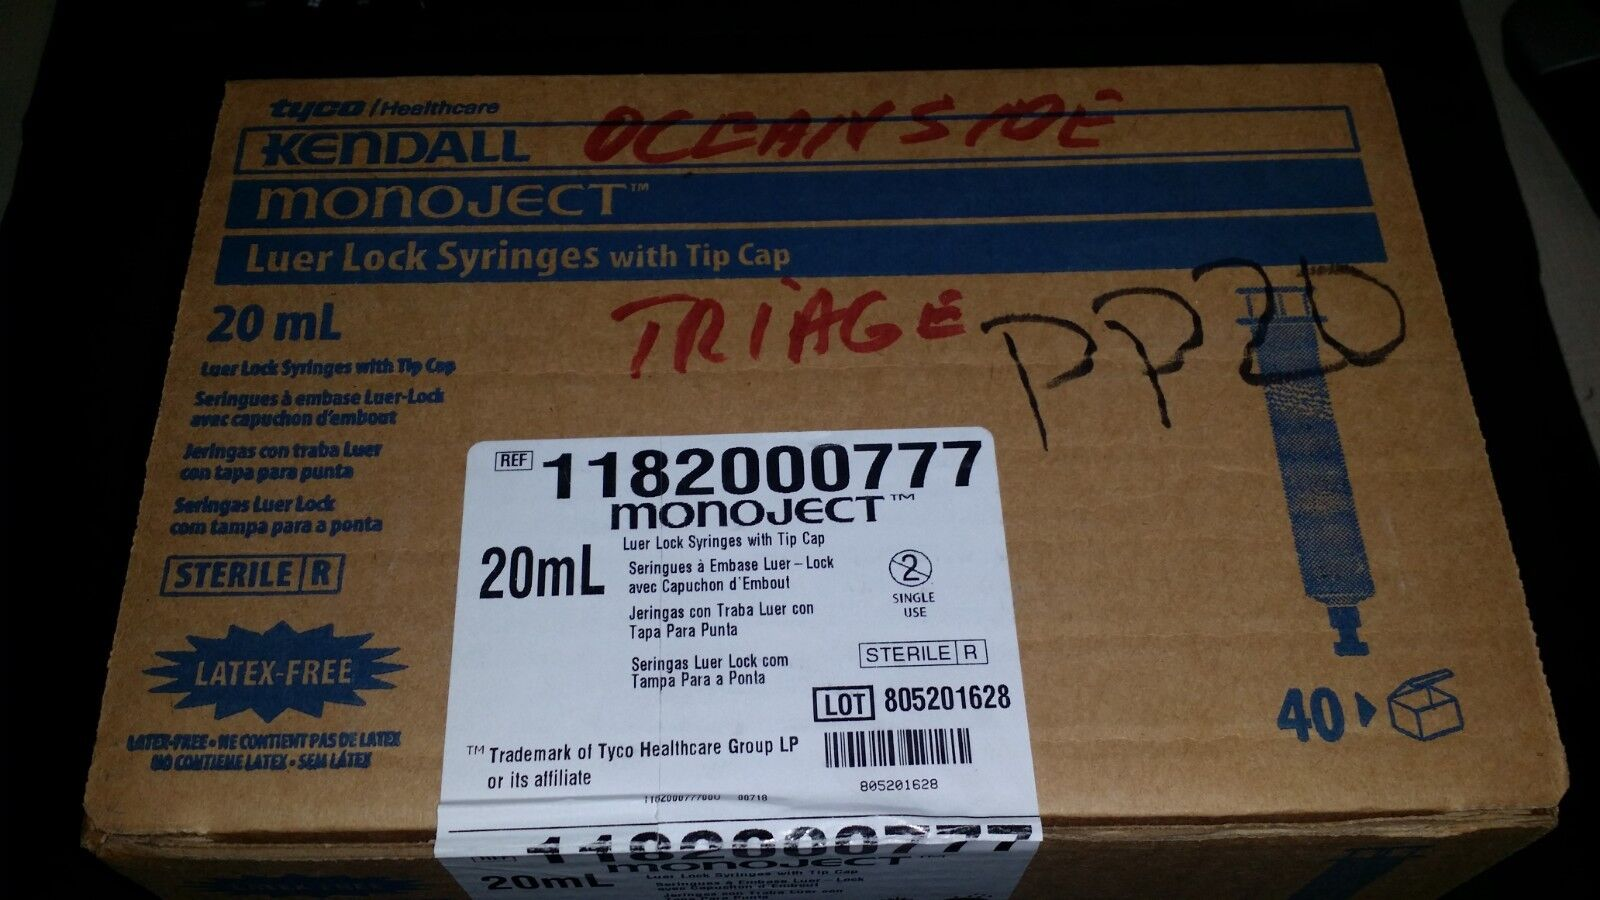 BOX 40 KENDALL MONOJECT 1182000777 LUER LOCK SYRINGES WITH T